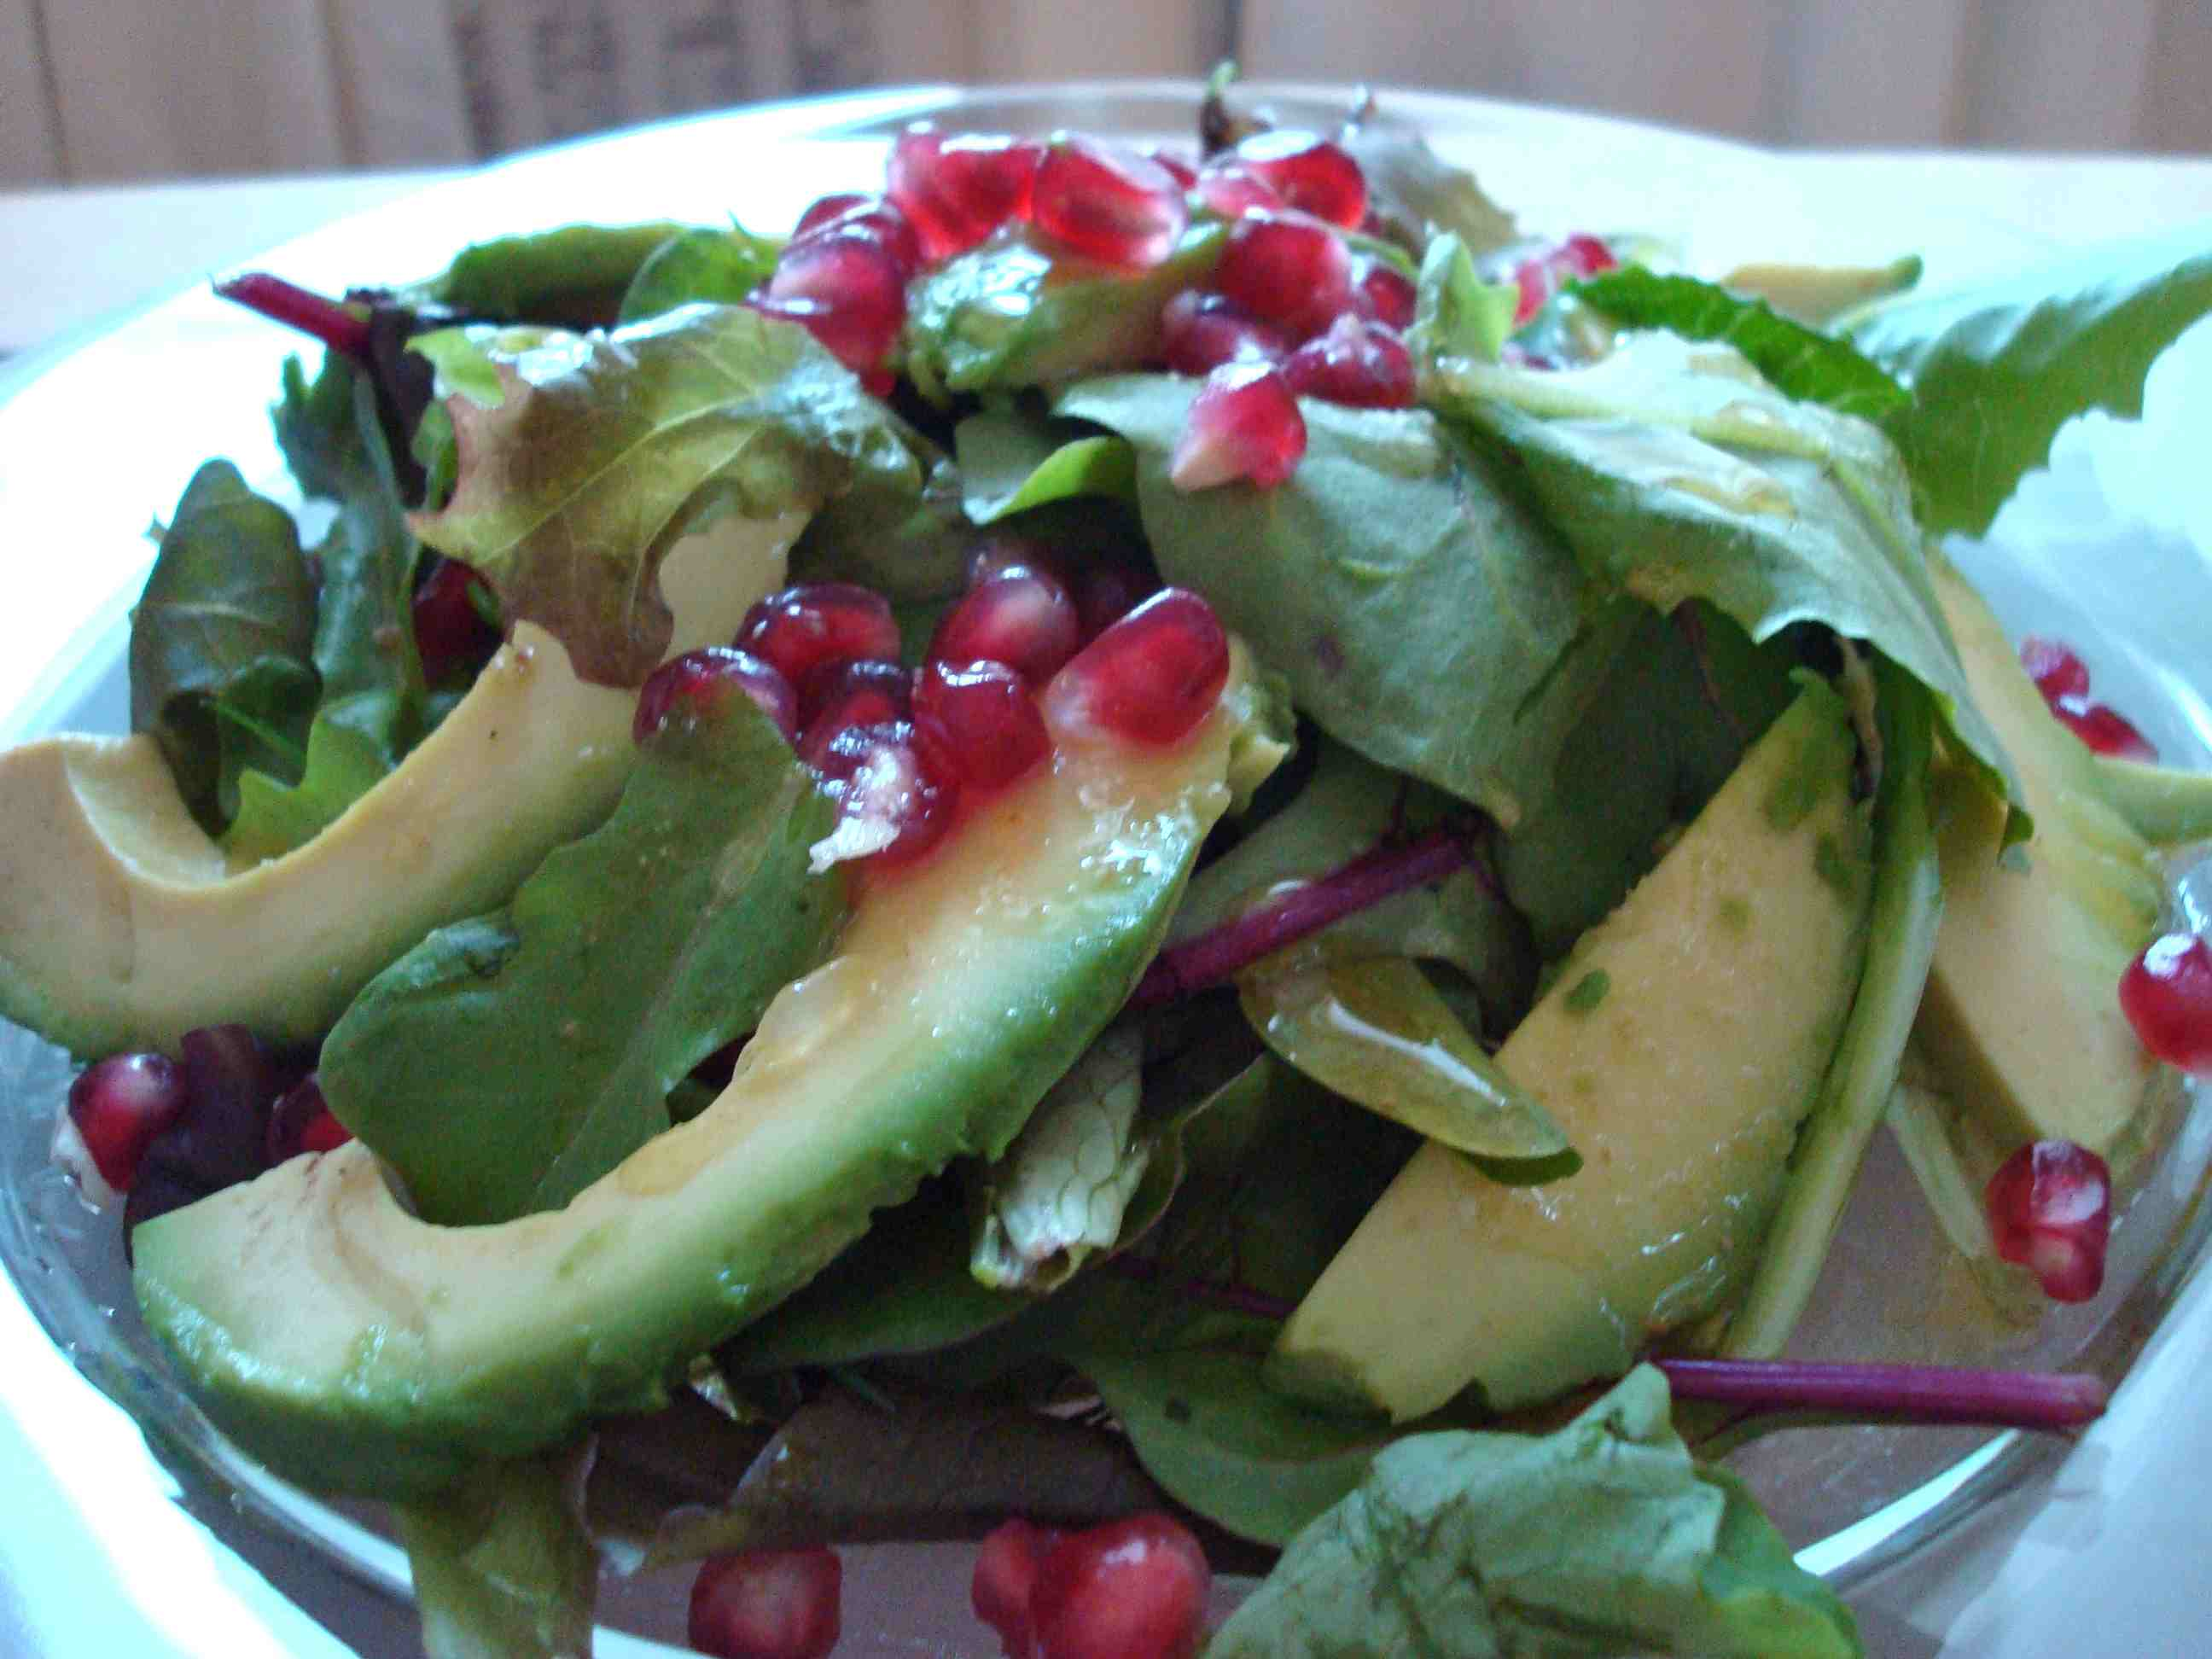 Avocado and Pomegranate Salad with Cumin Lime Vinaigrette